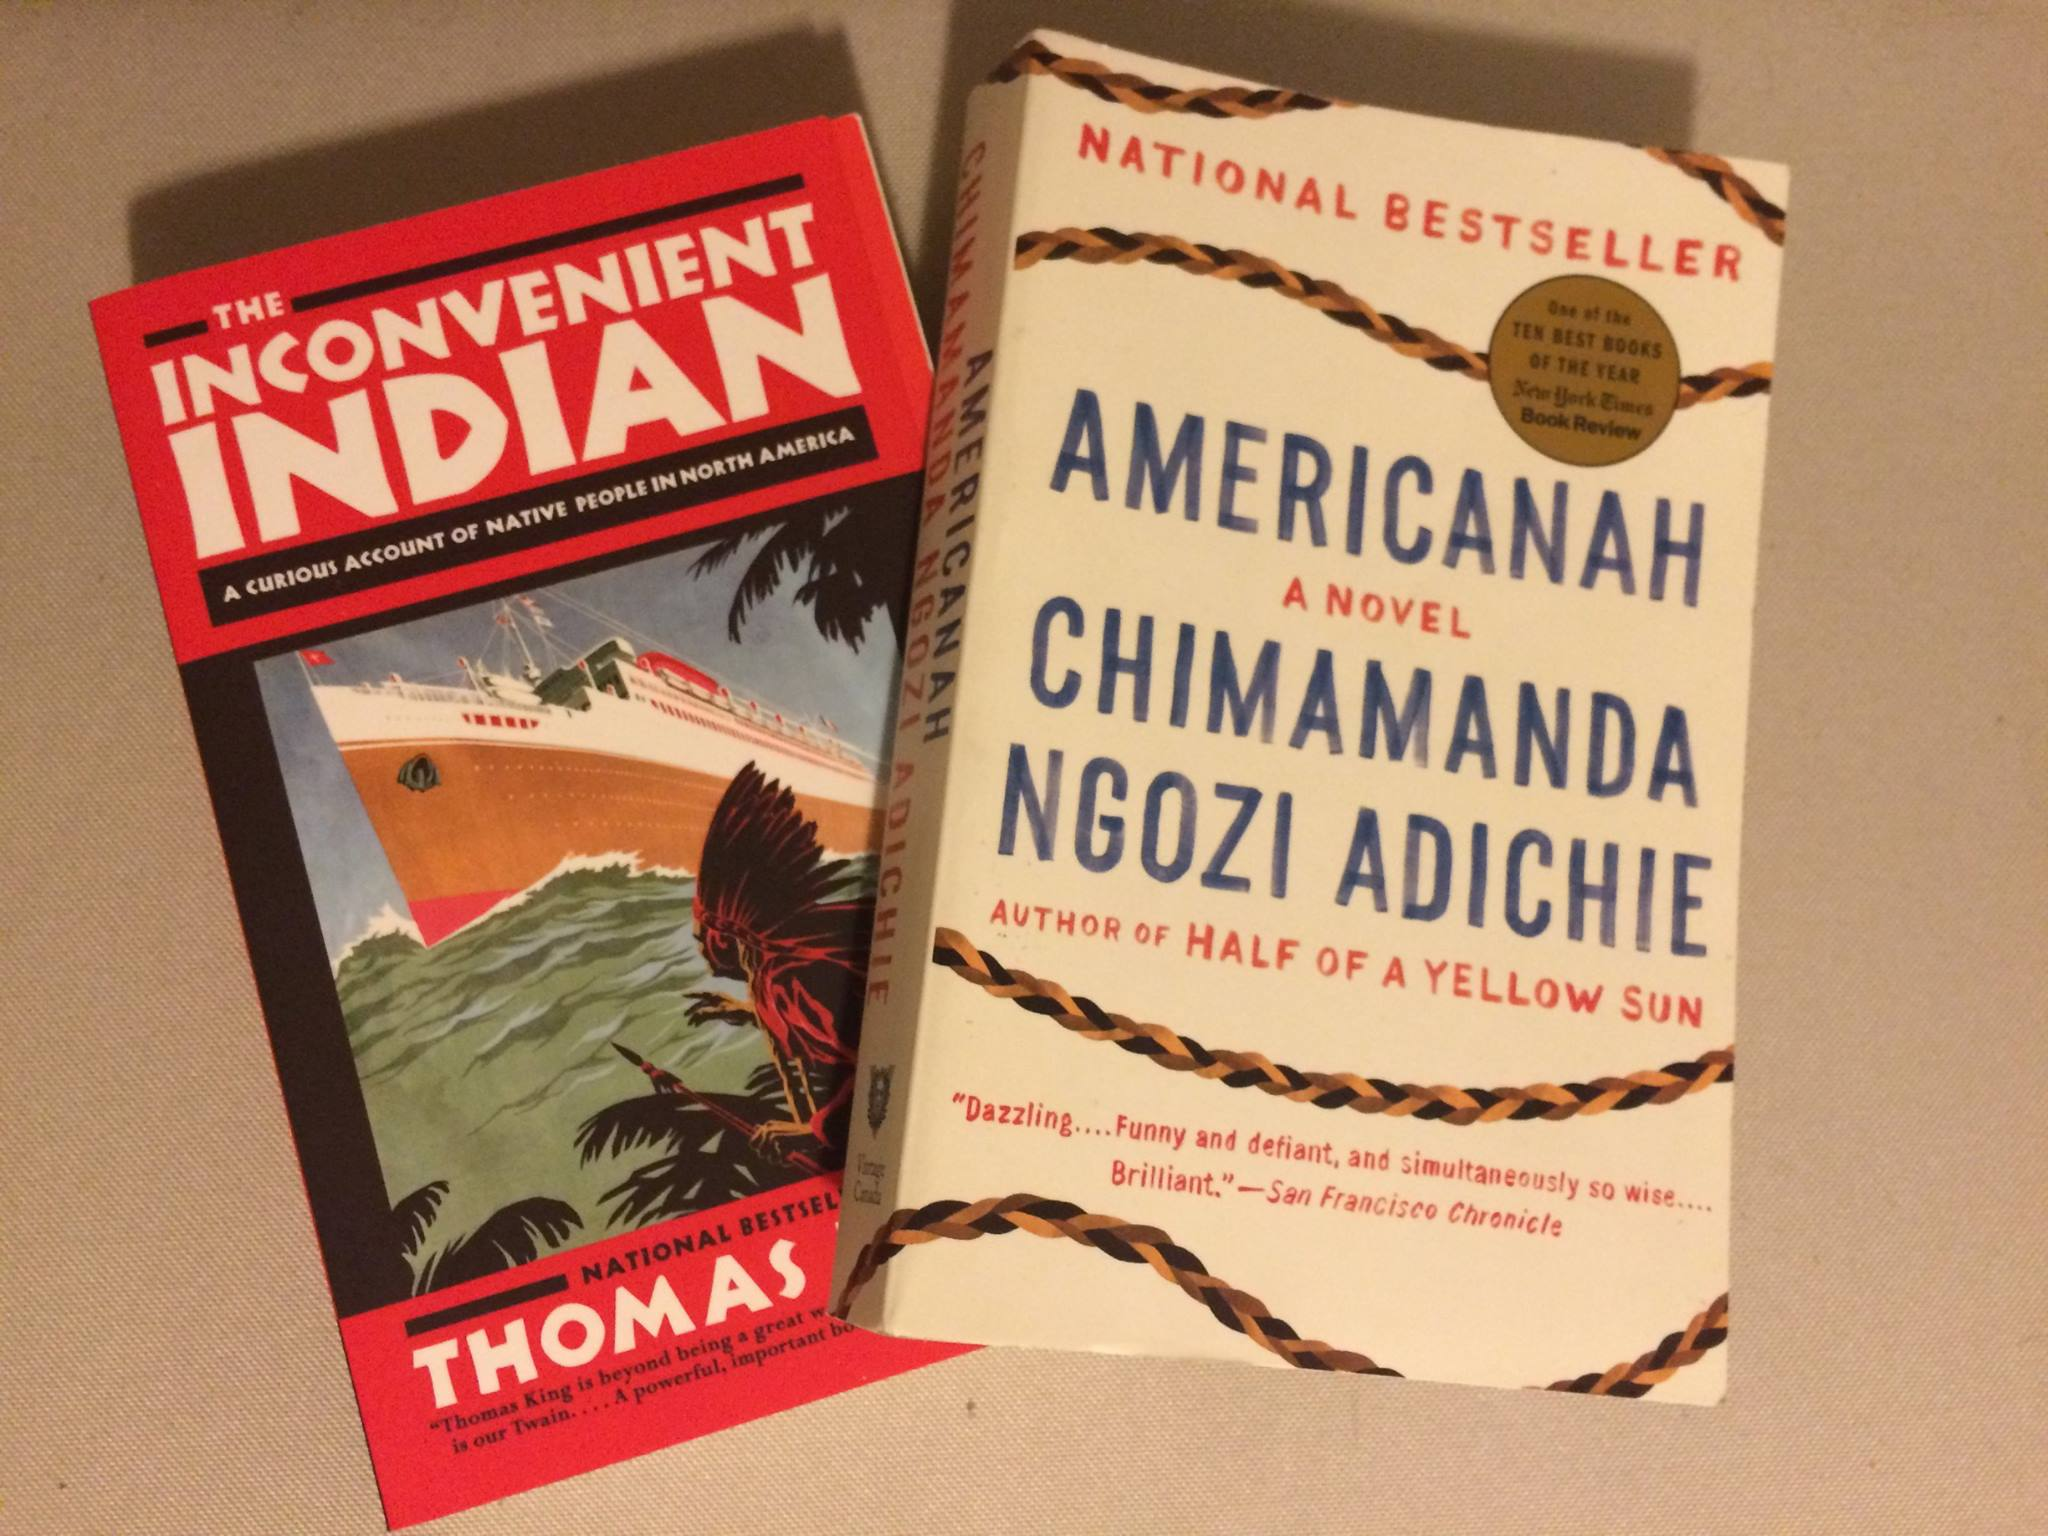 Photo of two book covers: Americanah and The Inconvenient Indian